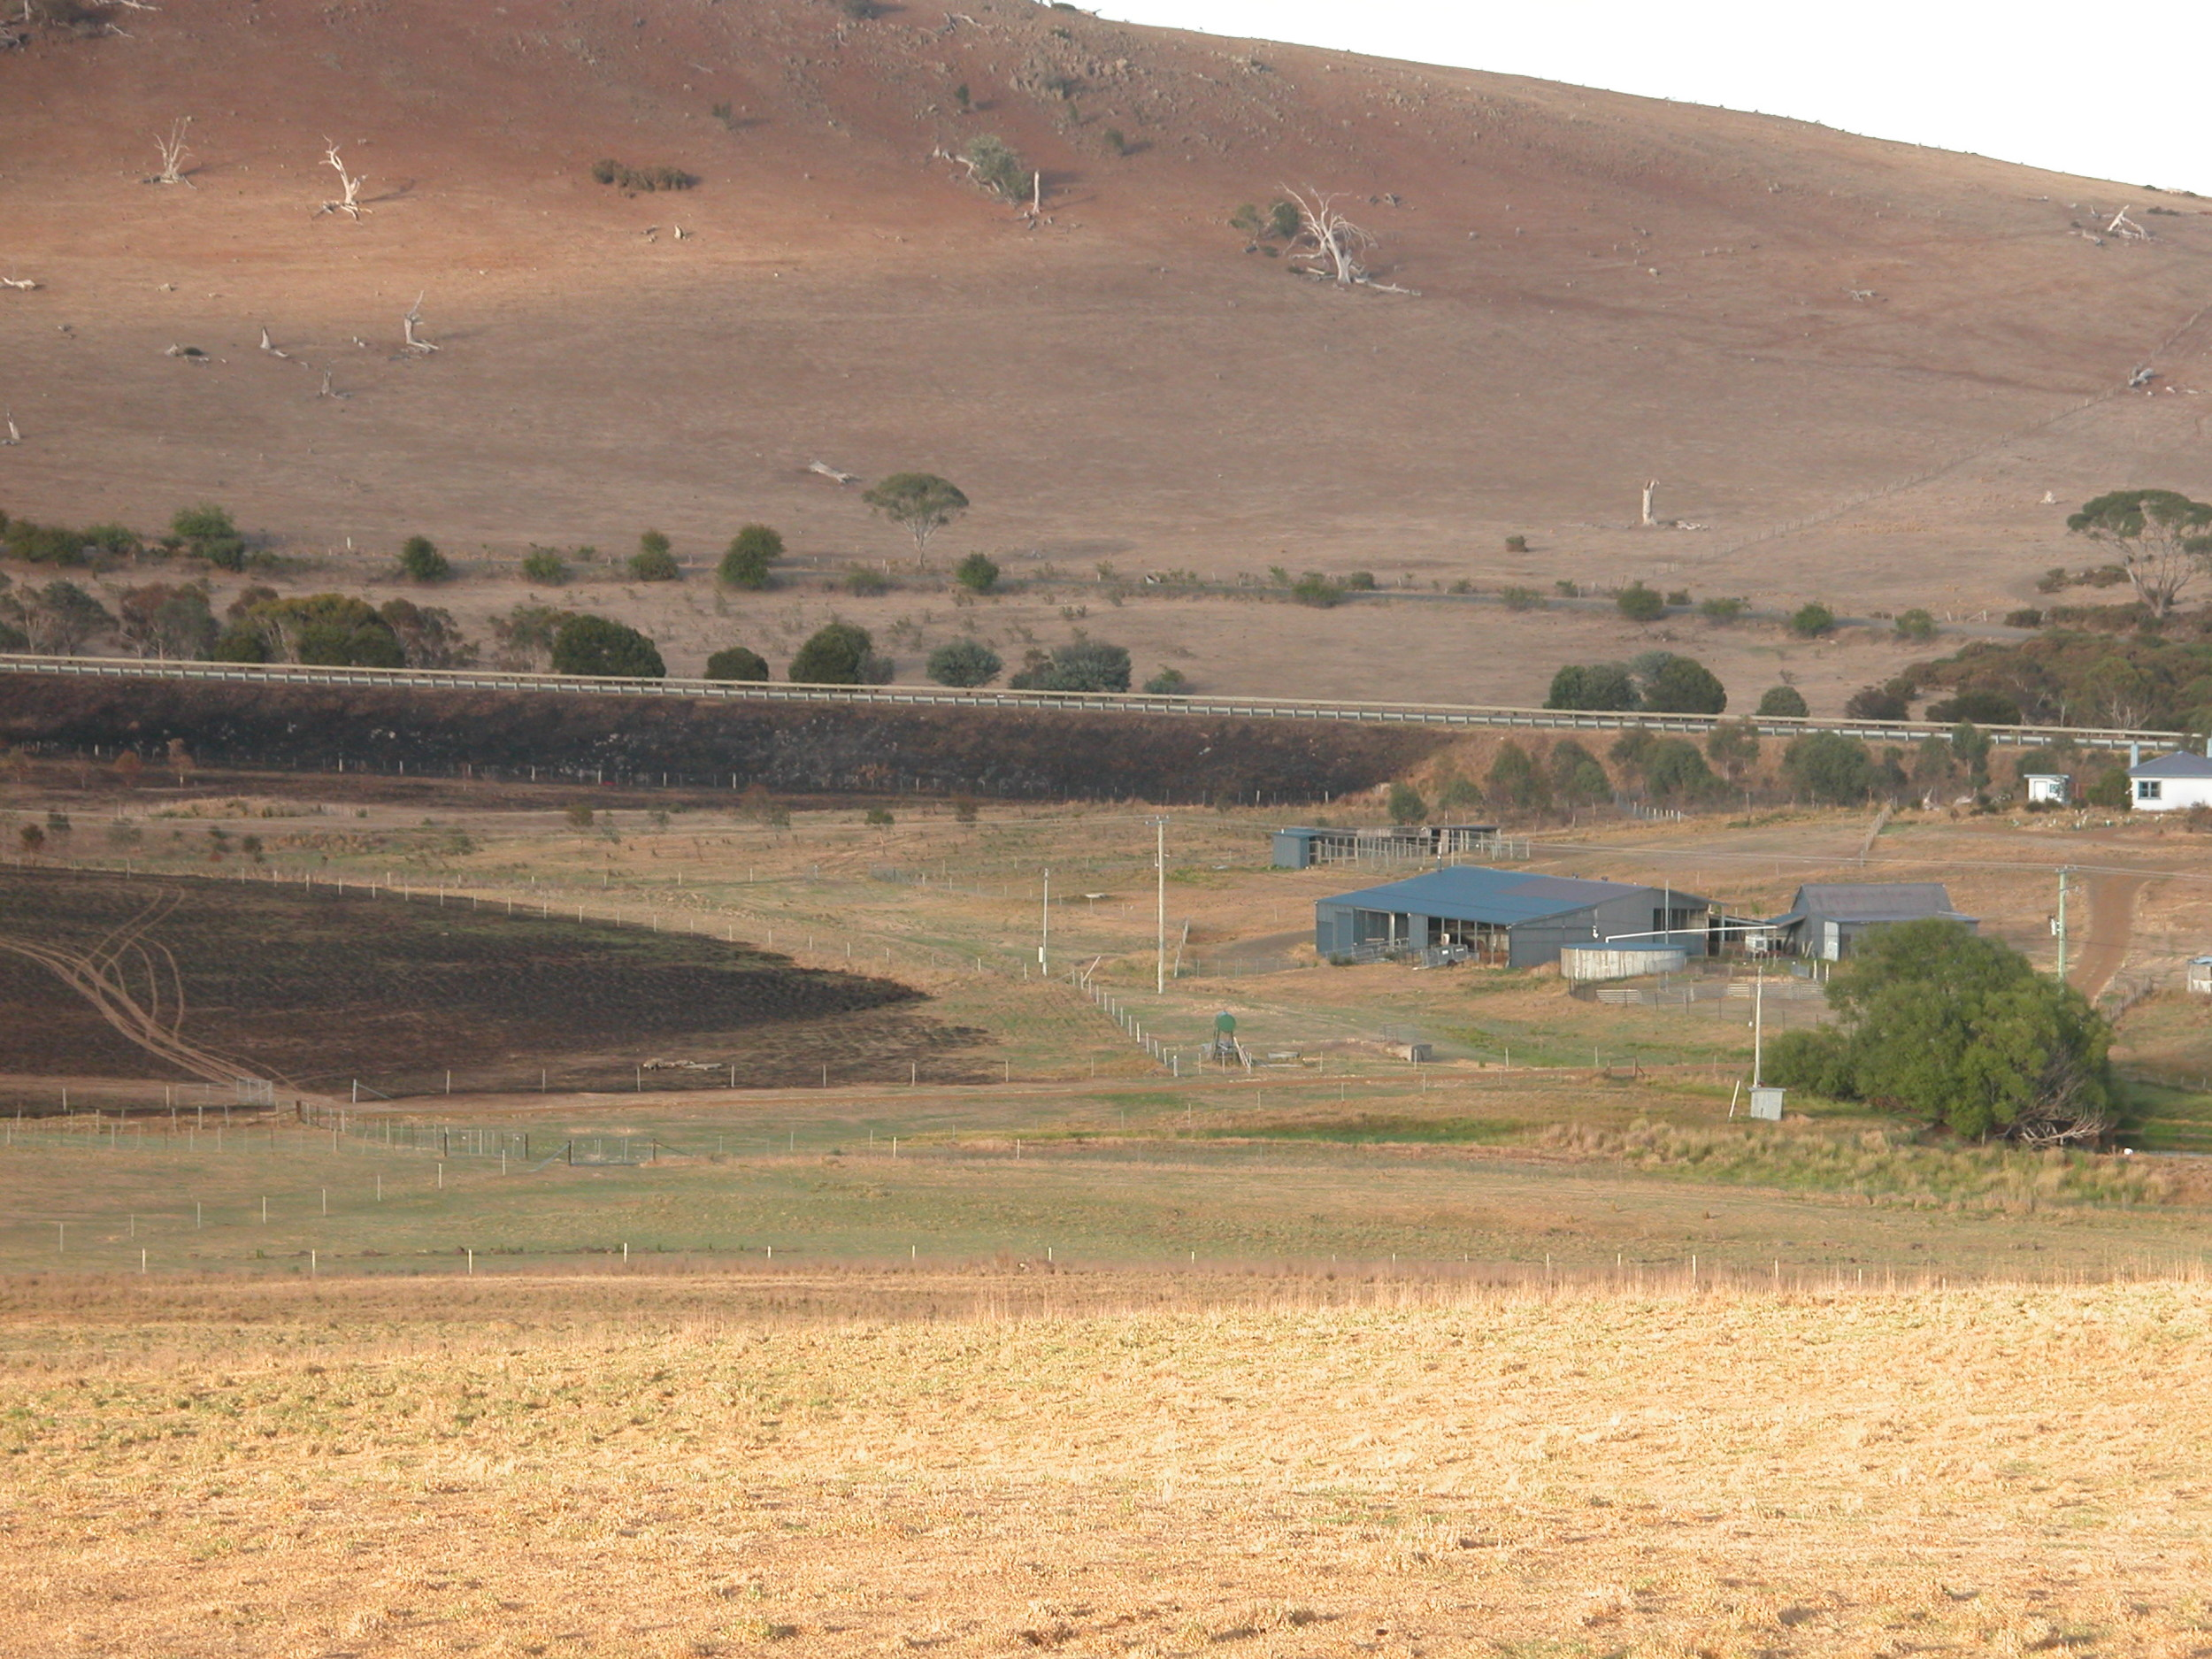 The fire started on the highway, and you can see how close it came to the house, kennels and woolshed.